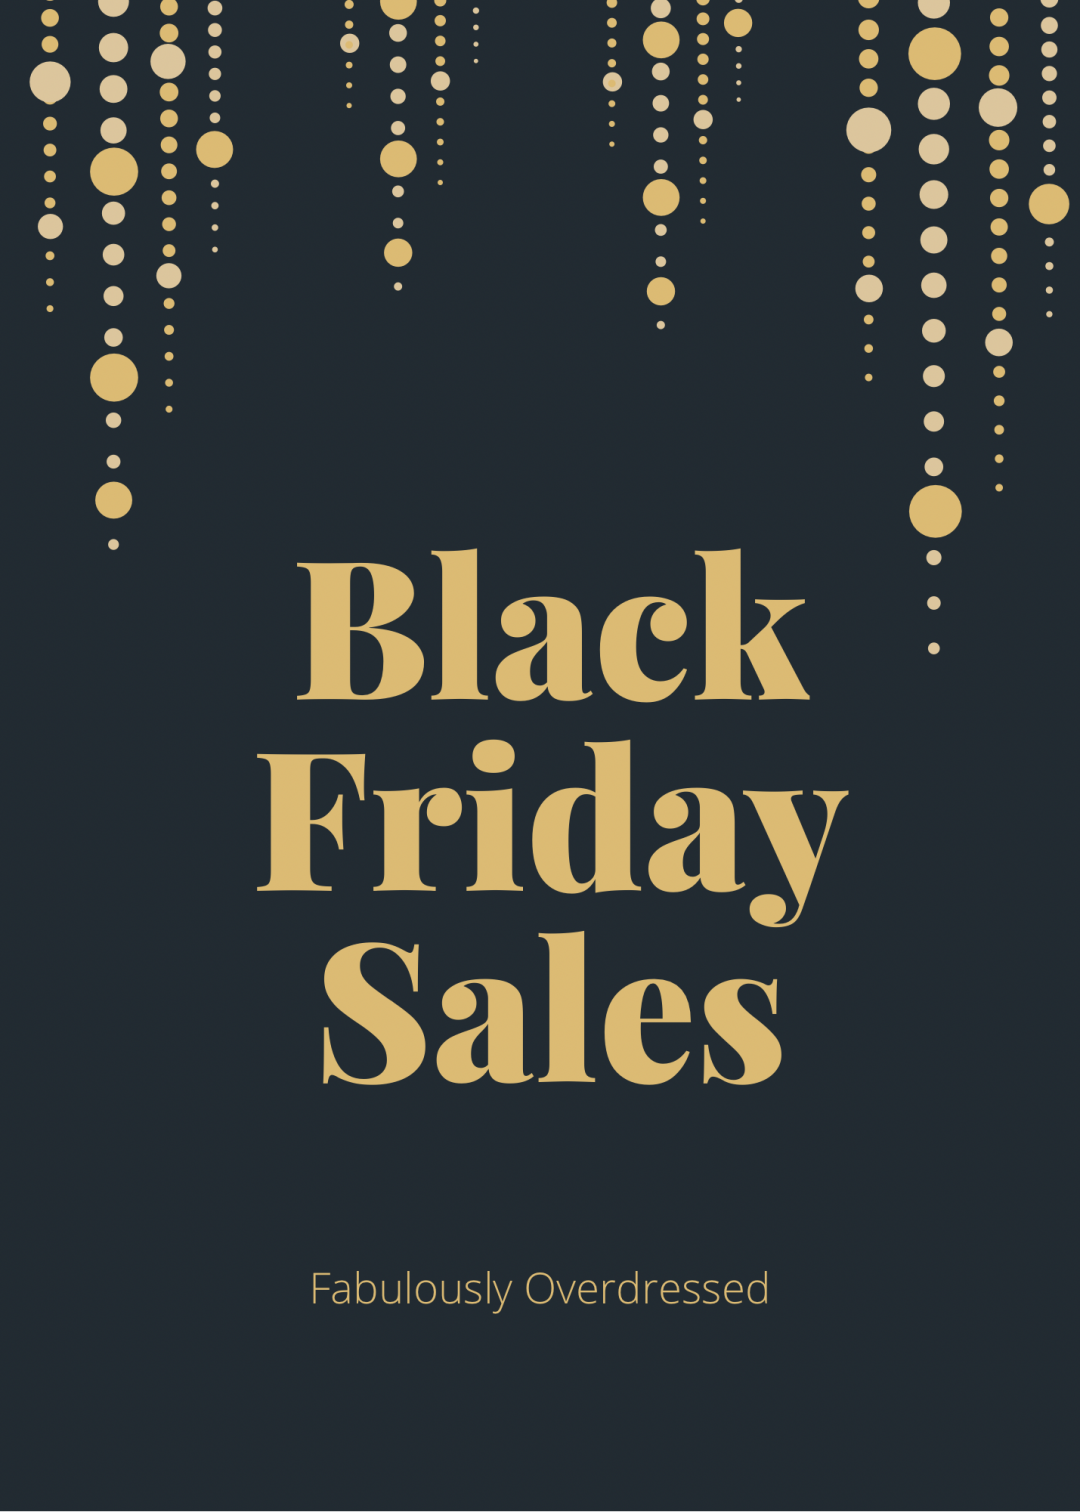 Fabulously Overdressed Blog shares her top Black Friday Sales